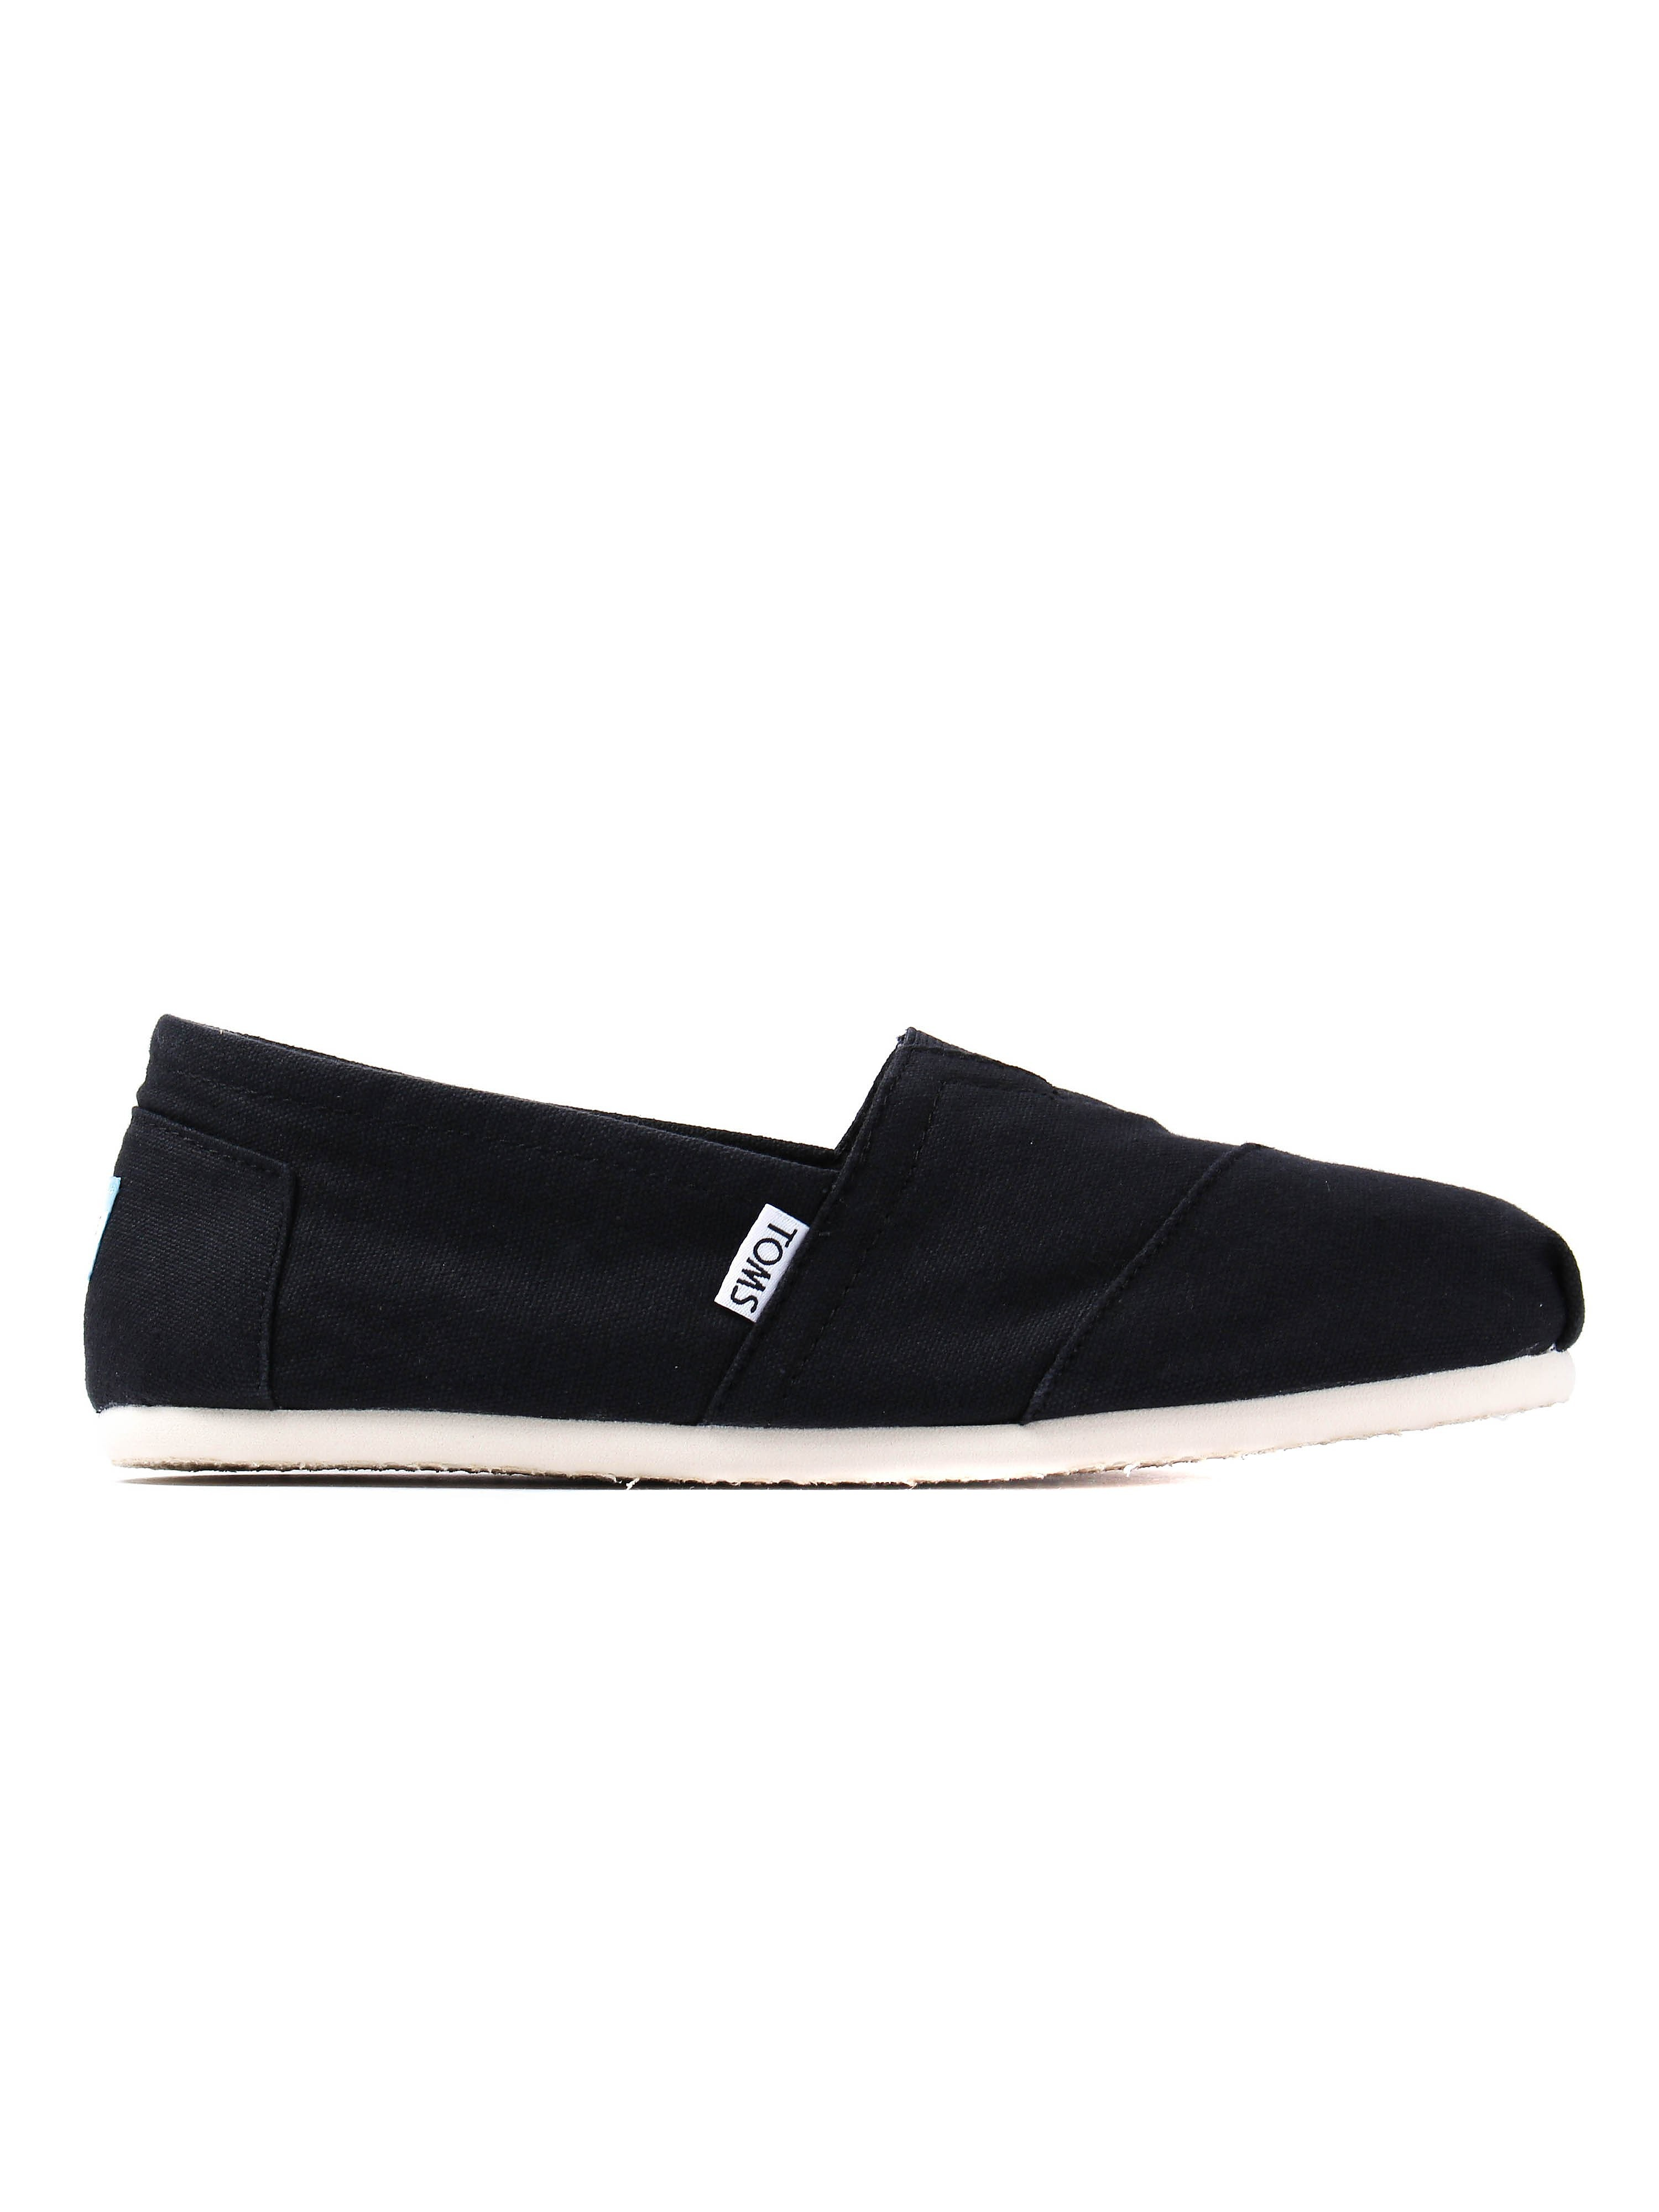 Toms Mens Classic Canvas Slip-On Shoes - Black